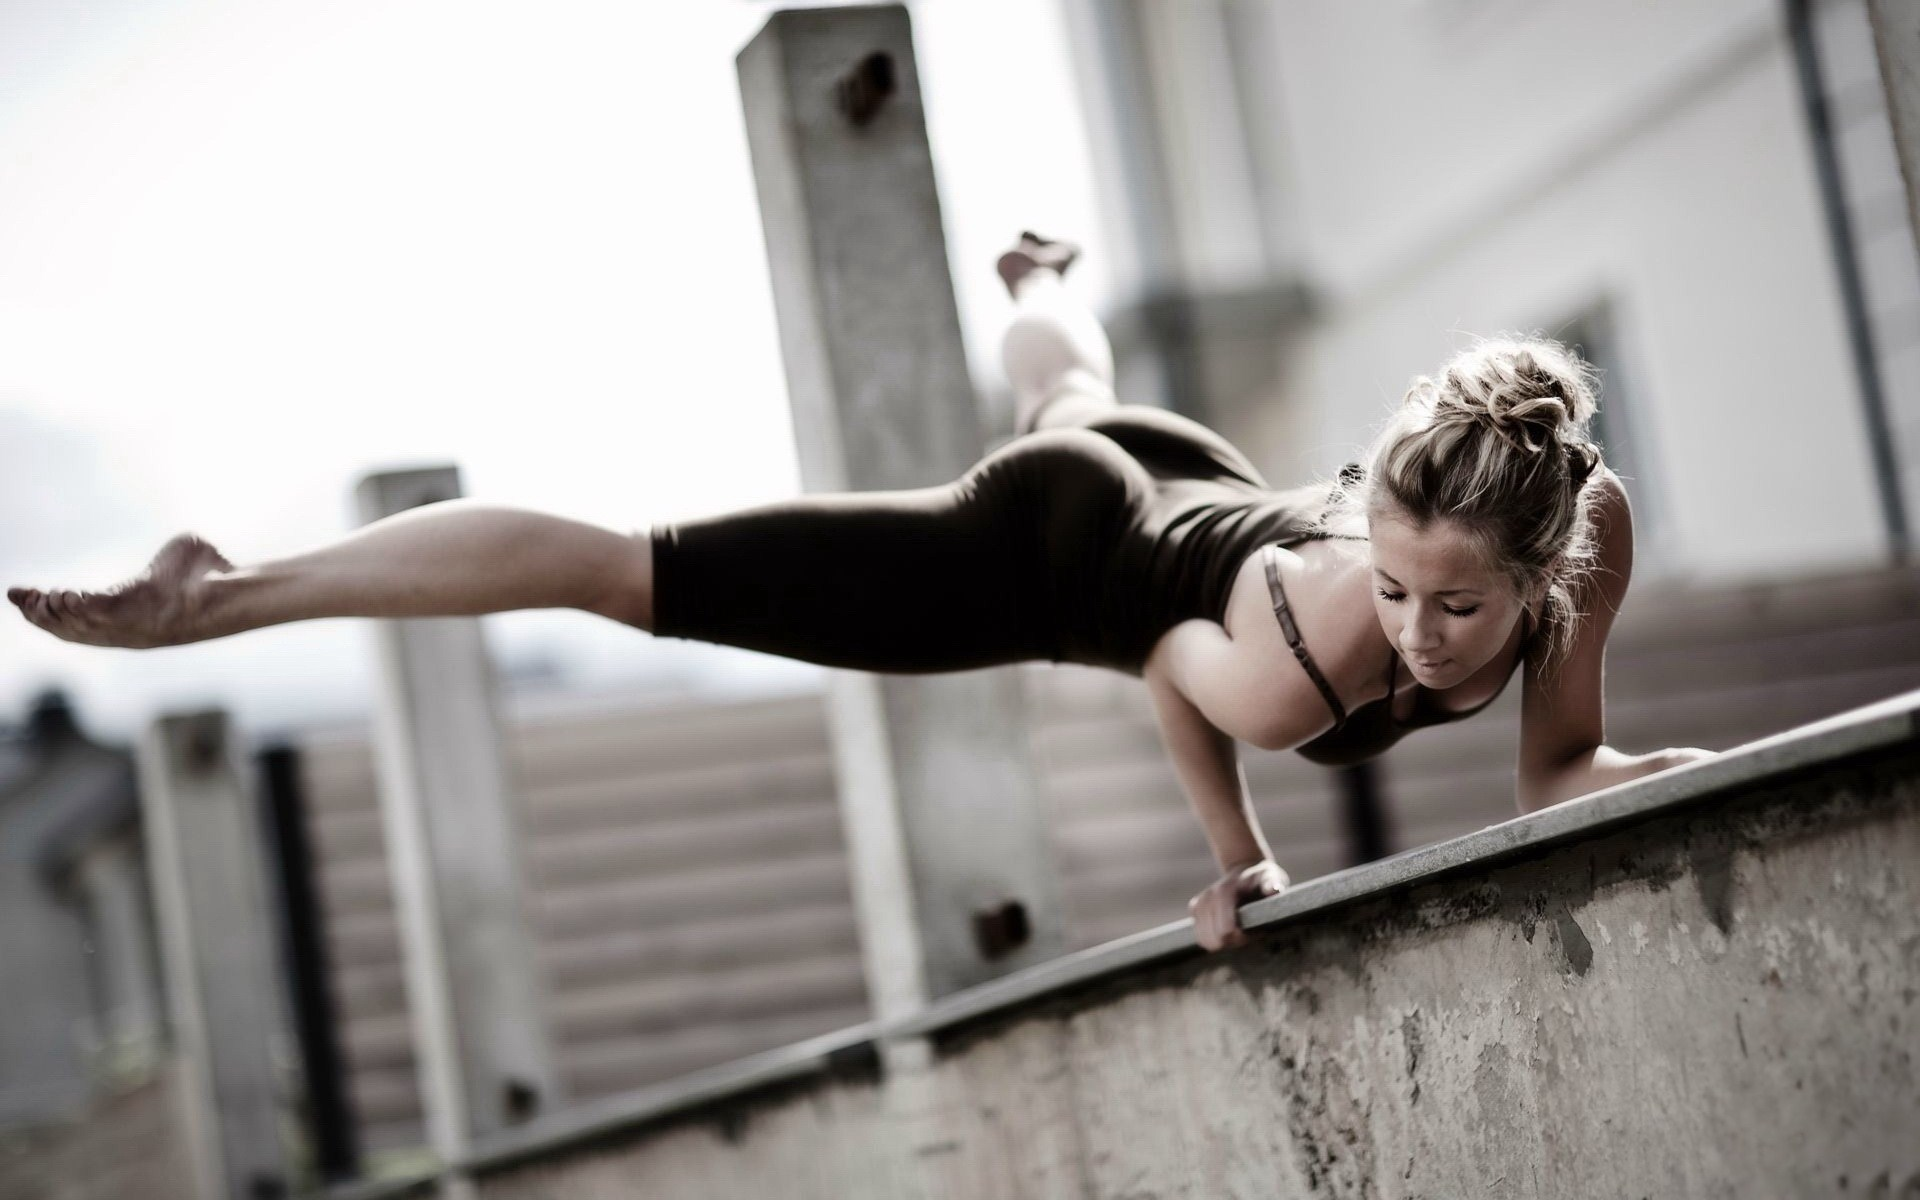 stunning fitness wallpaper 42311